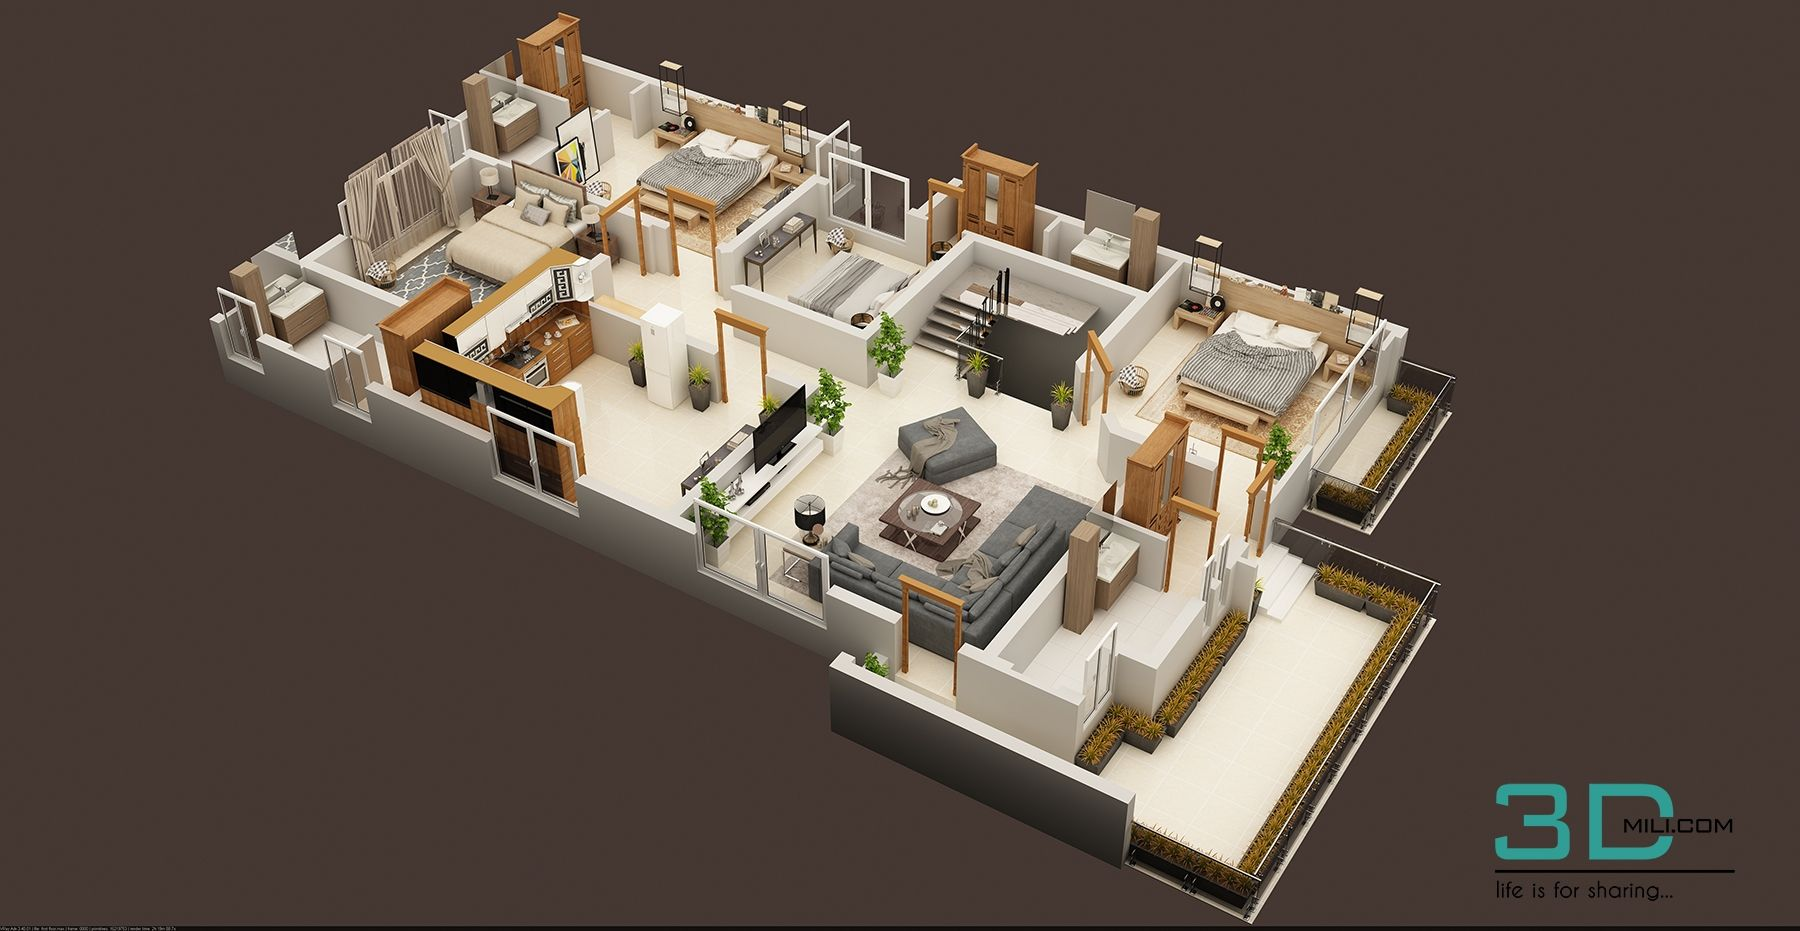 147 Modern House Plan Designs Free Download One Bedroom House Small House Plans Small Apartment Plans